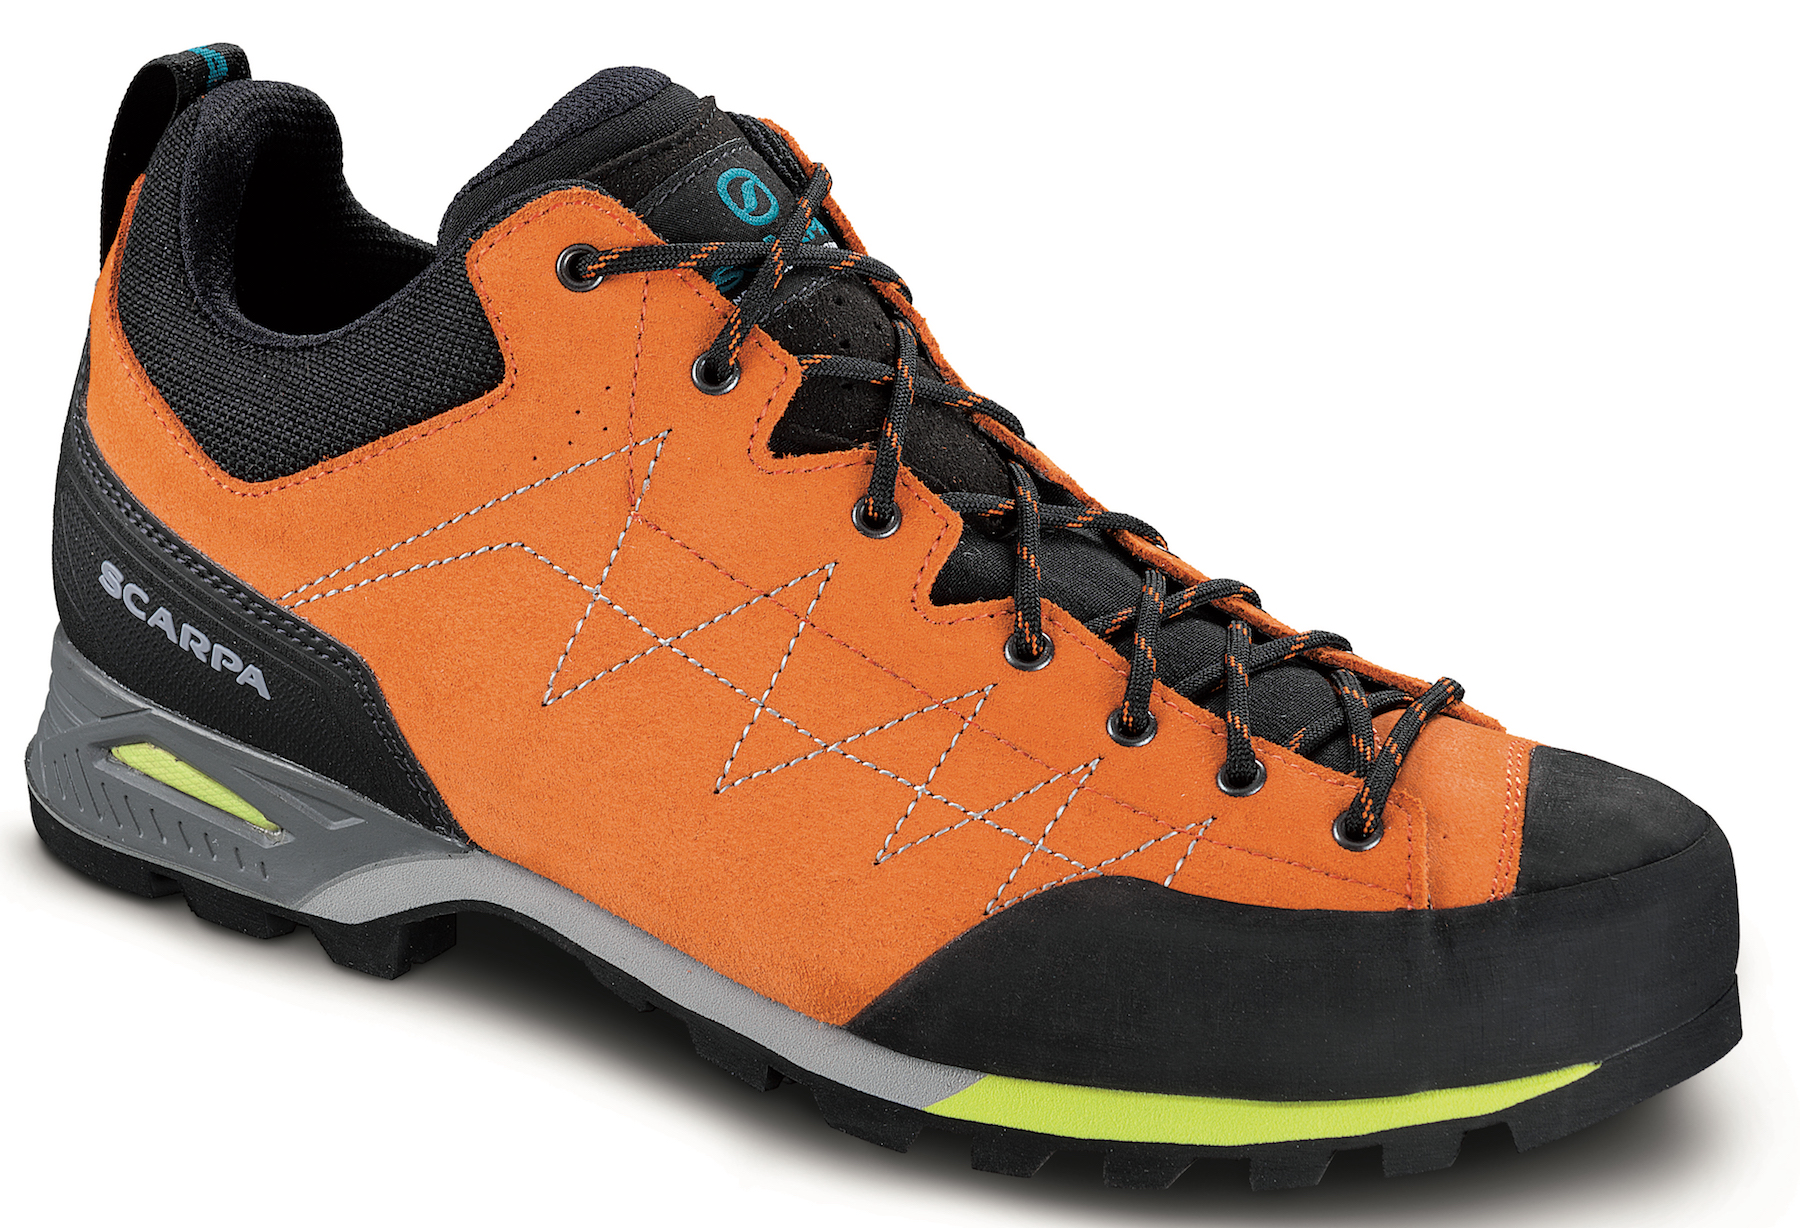 Scarpa Zodiac - Chaussures approche homme